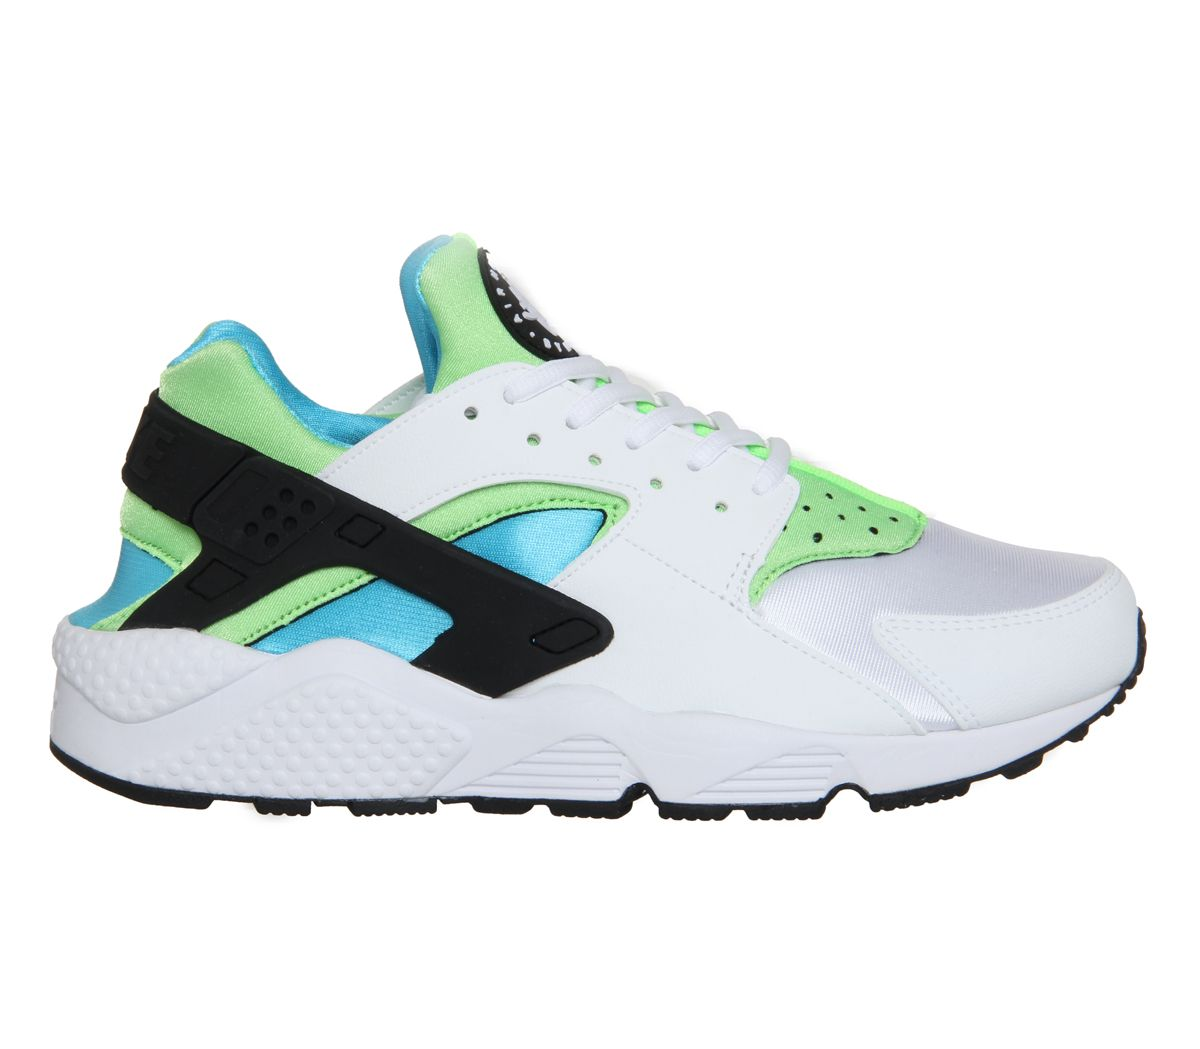 brand new 58a35 eb488 Nike Air Huarache White Clearwater Flash Lime - Unisex Sports (I have these)